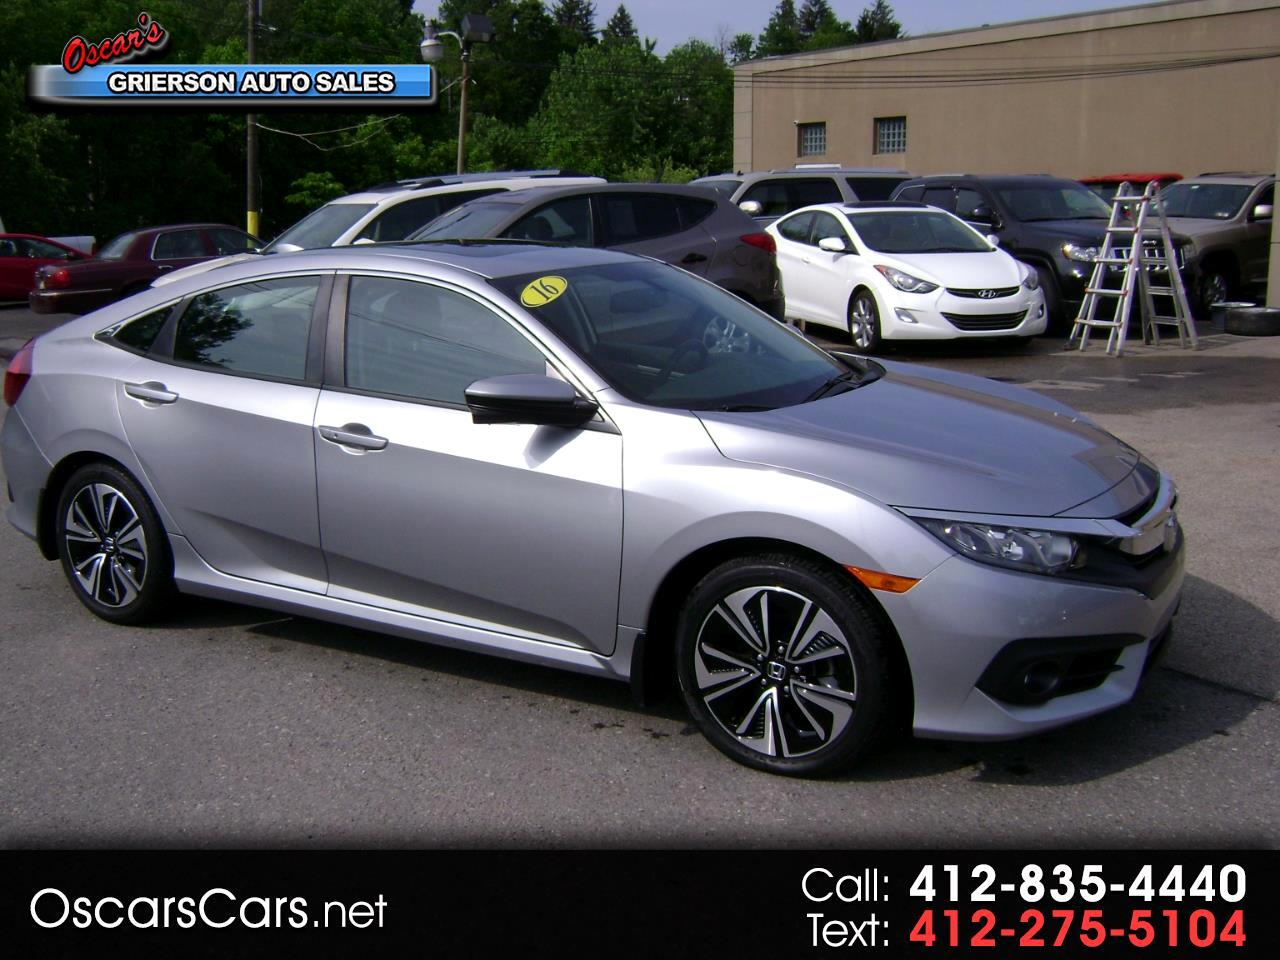 2016 Honda Civic Sedan 4dr CVT EX-L